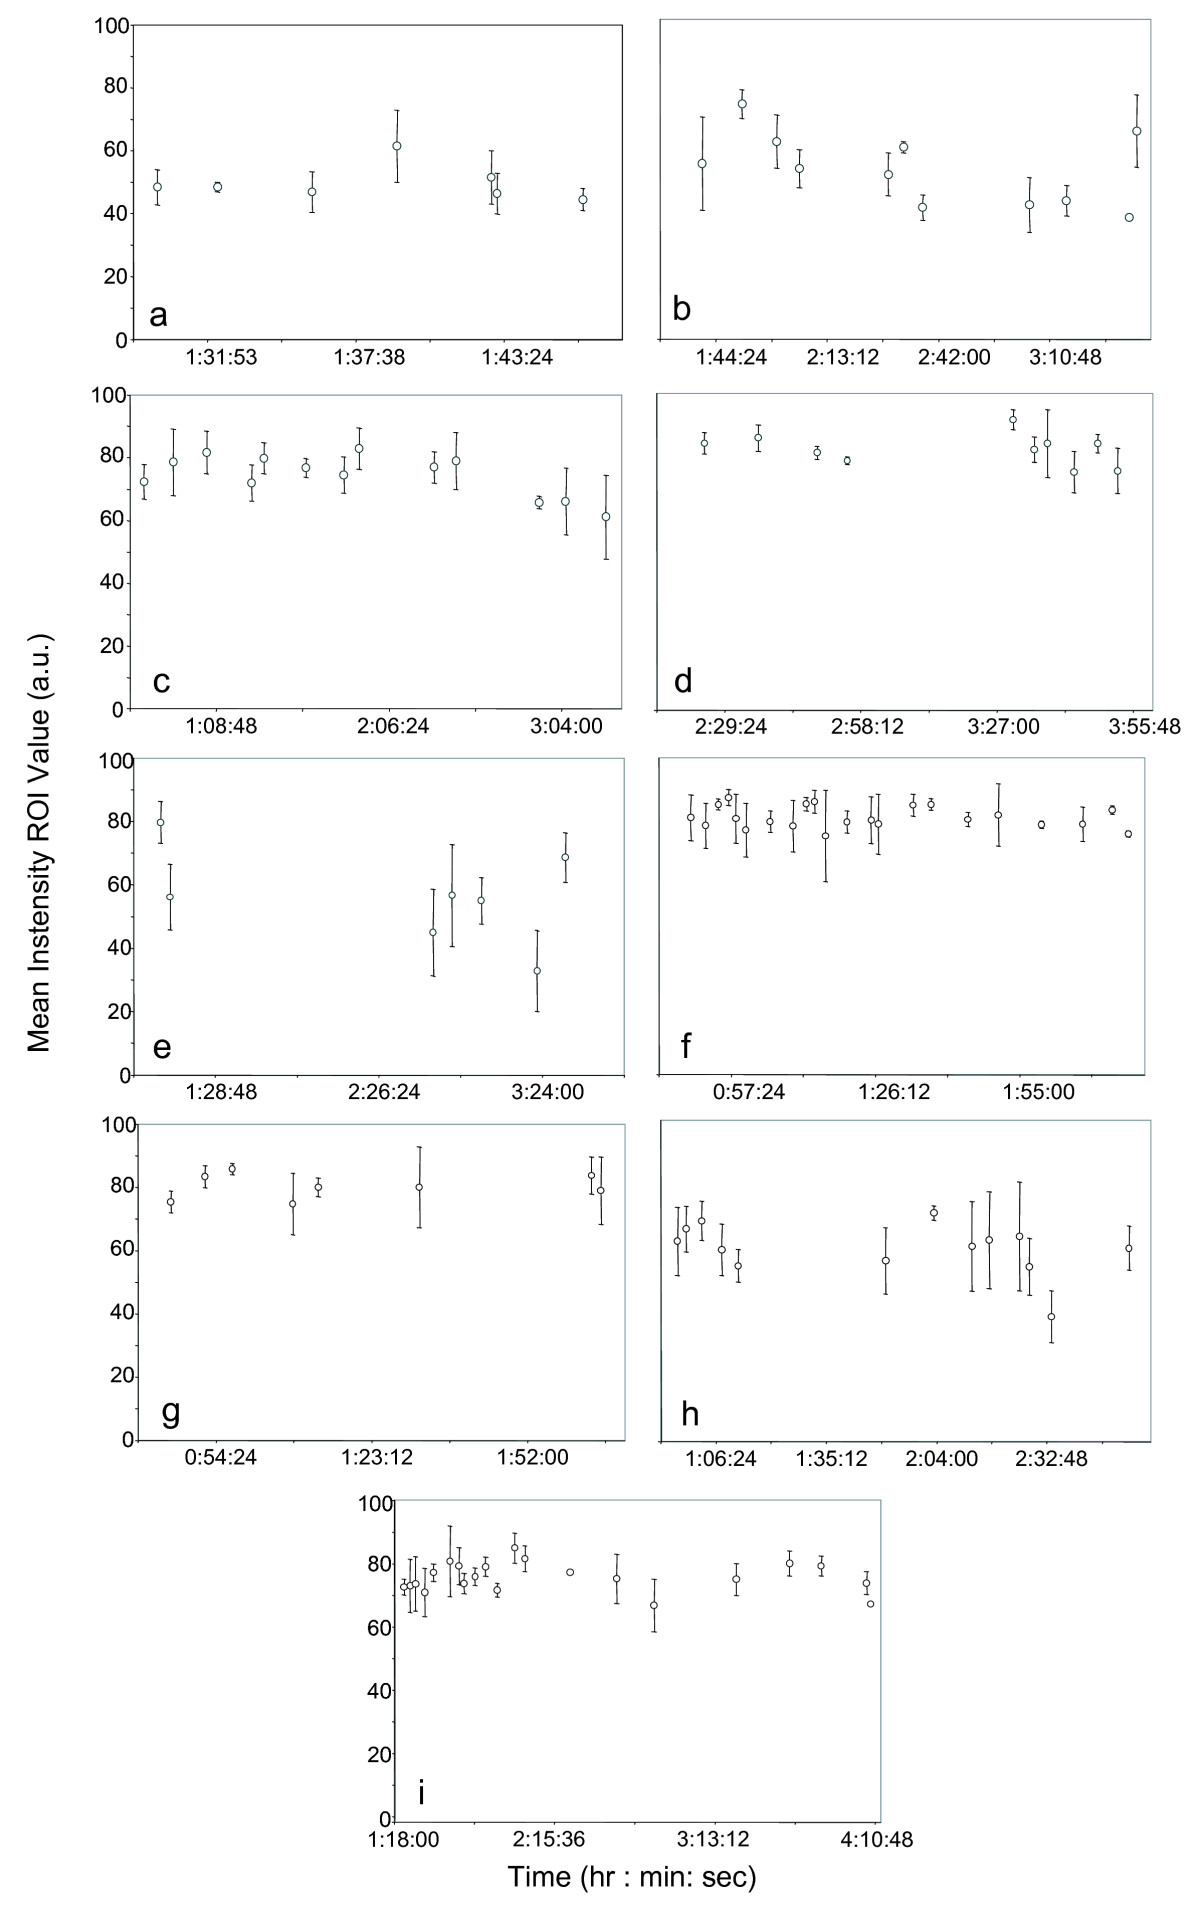 http://static-content.springer.com/image/art%3A10.1186%2F1471-2482-8-8/MediaObjects/12893_2007_Article_113_Fig4_HTML.jpg